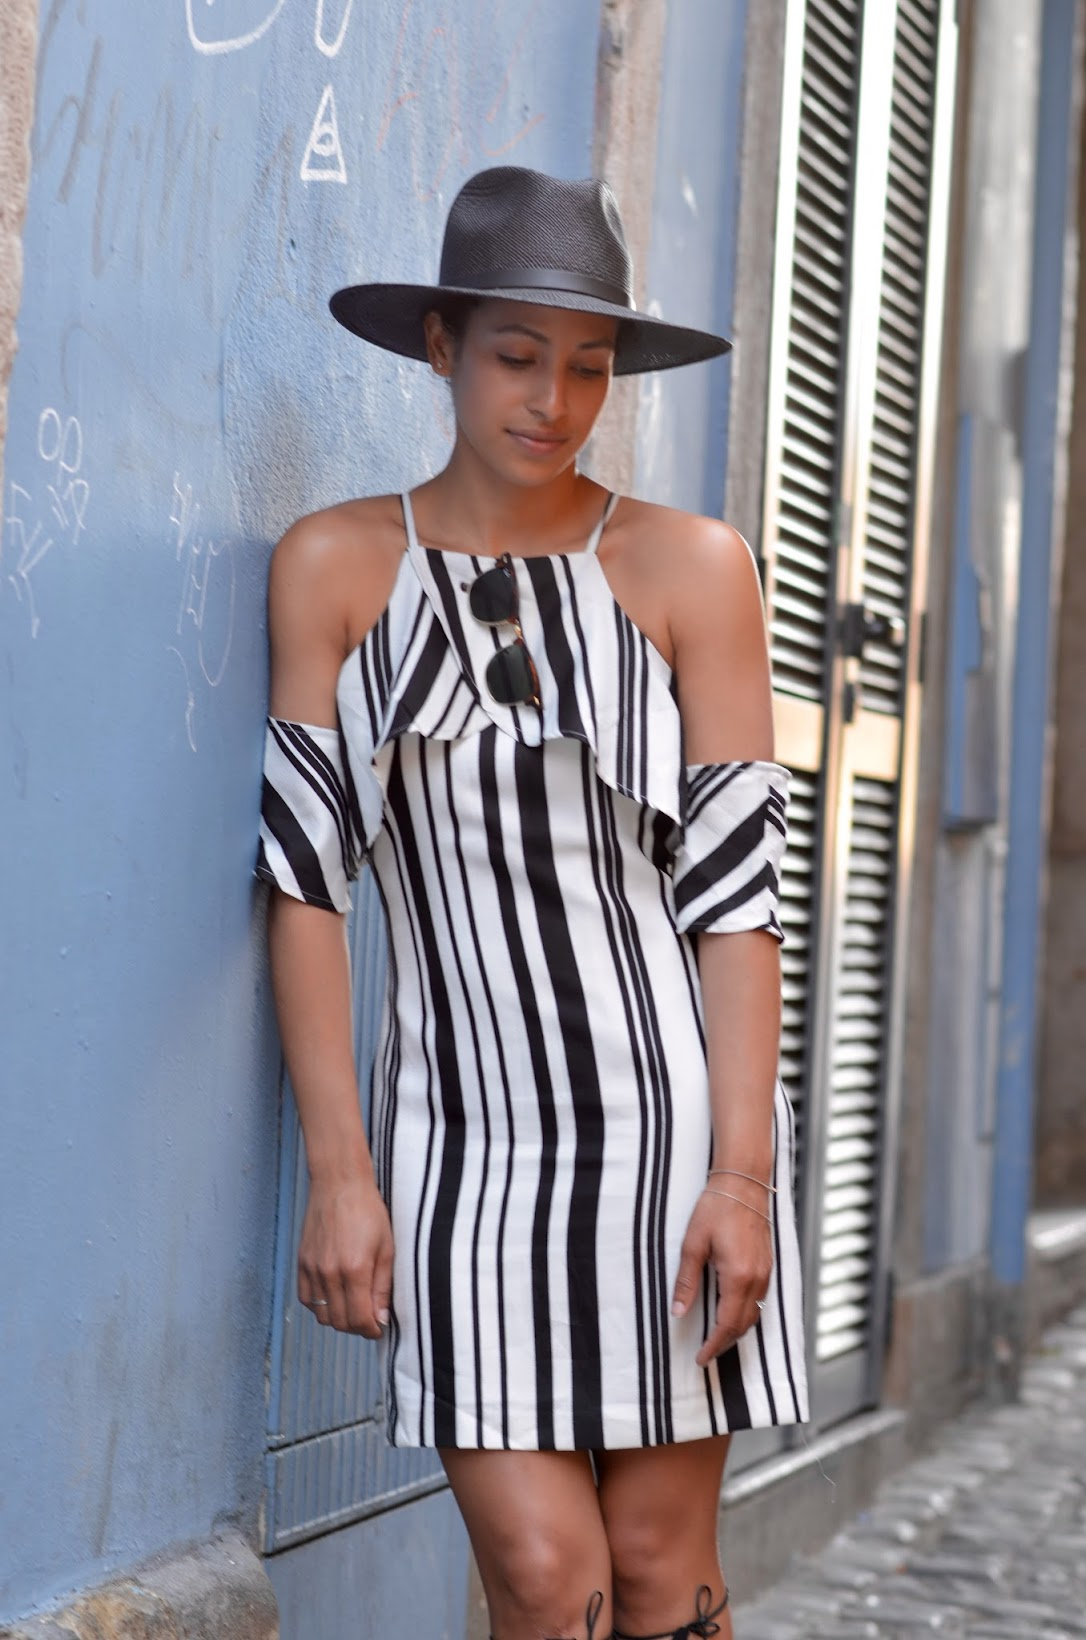 lisbon, portugal, street style in lisbon, what to wear in lisbon, what to wear in portugal, summer style, European vacation, black straw fedora, Goorin Bros straw fedora, striped Joa dress, J.O.A, chic summer vacation style